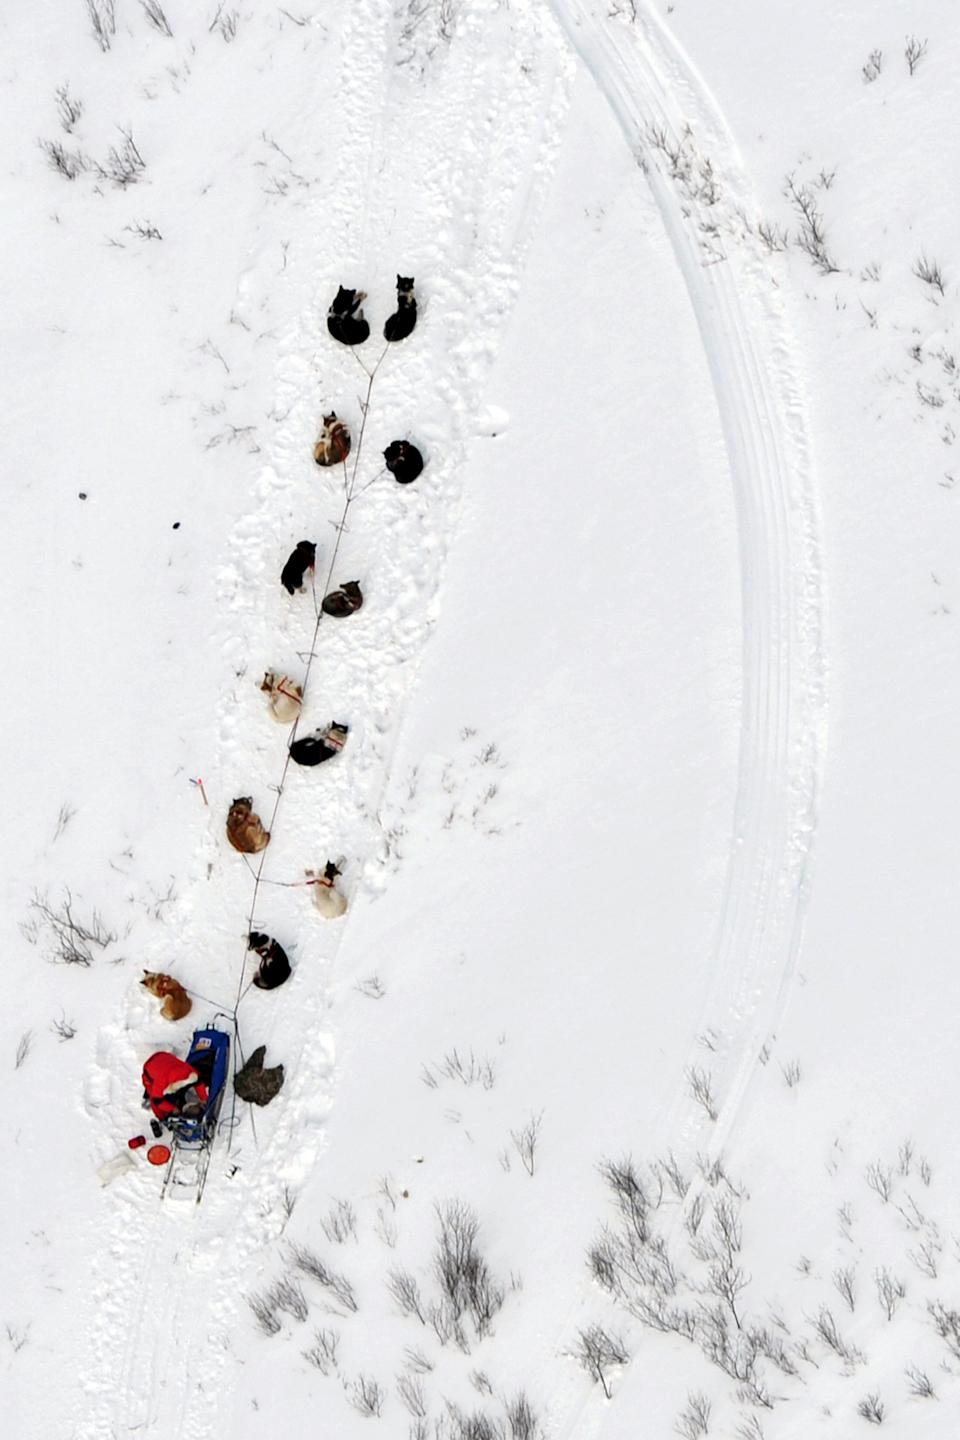 A musher and dog team rest between the Rohn and Nikolai checkpoints in Alaska during the Iditarod Trail Sled Dog Race on Tuesday, March 5, 2013. (AP Photo/The Anchorage Daily News, Bill Roth)